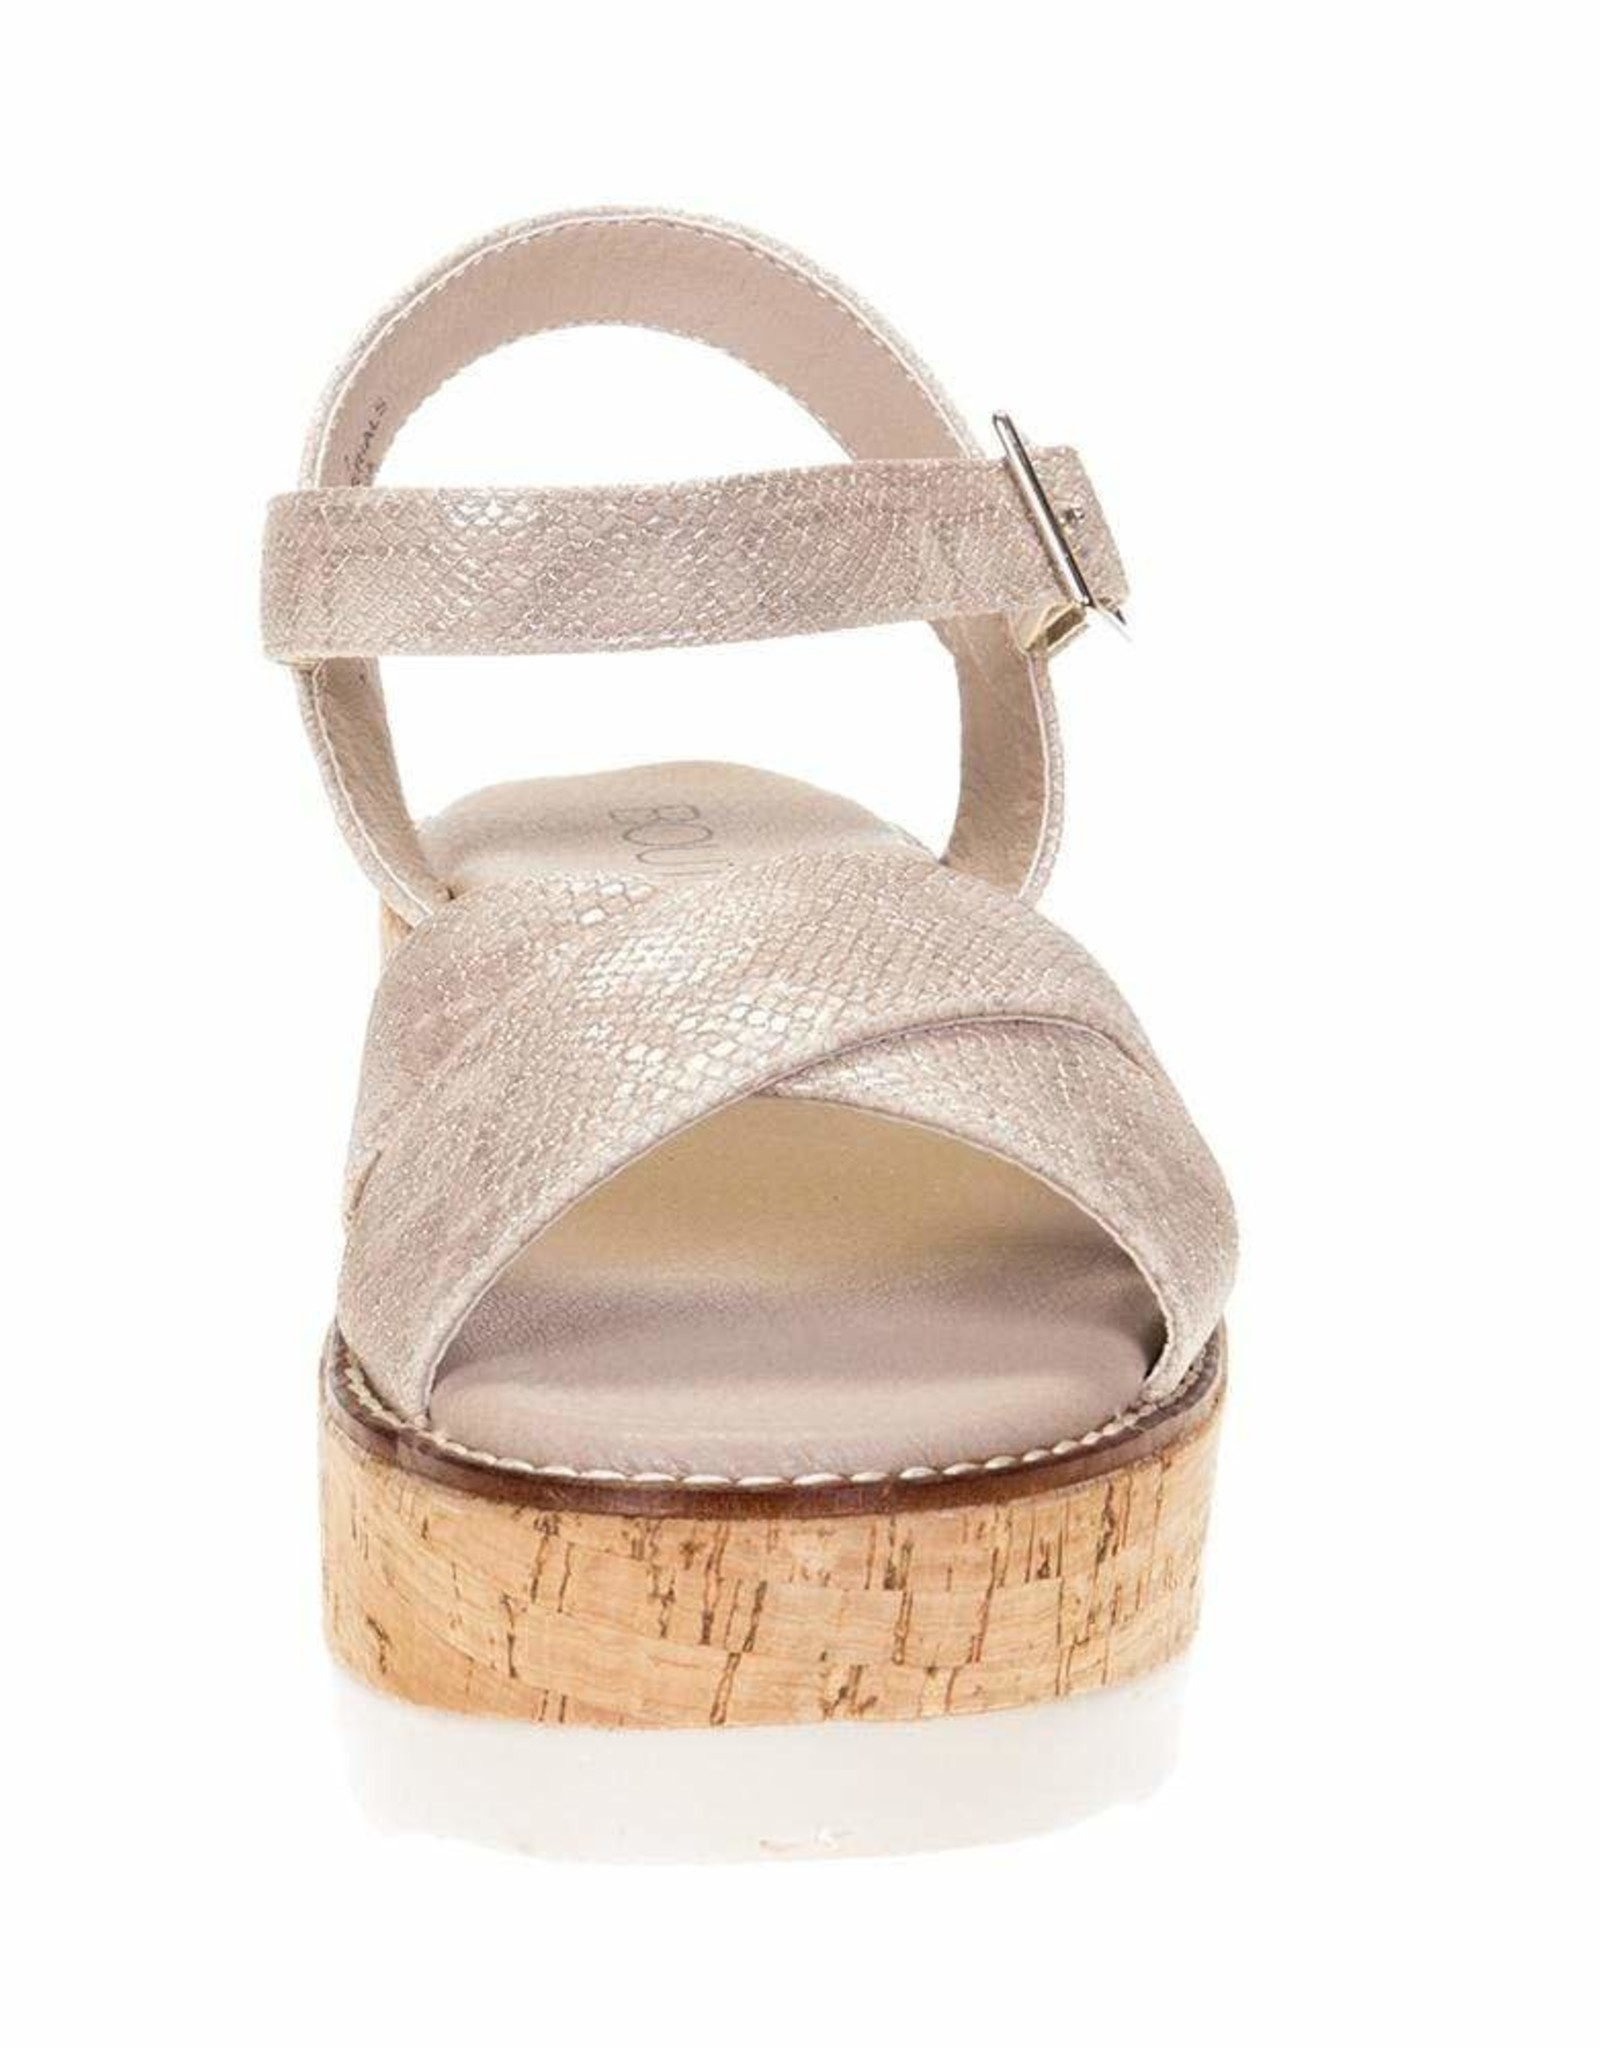 Corkys Fluffie- Champagne Wedge